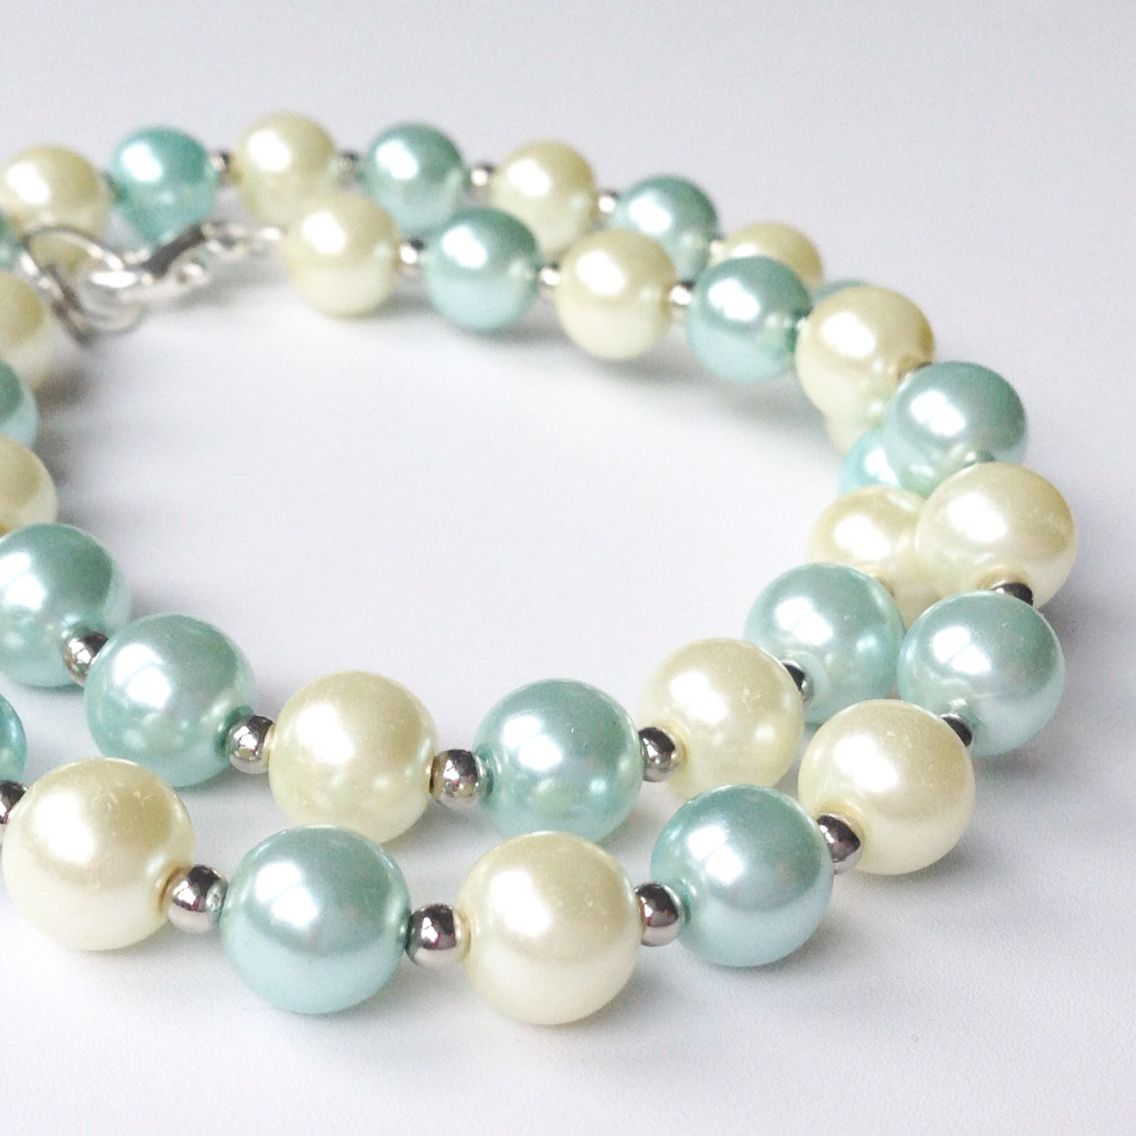 Improve Your Skills with Jewelry Making Classes | Girl guides, Beads ...